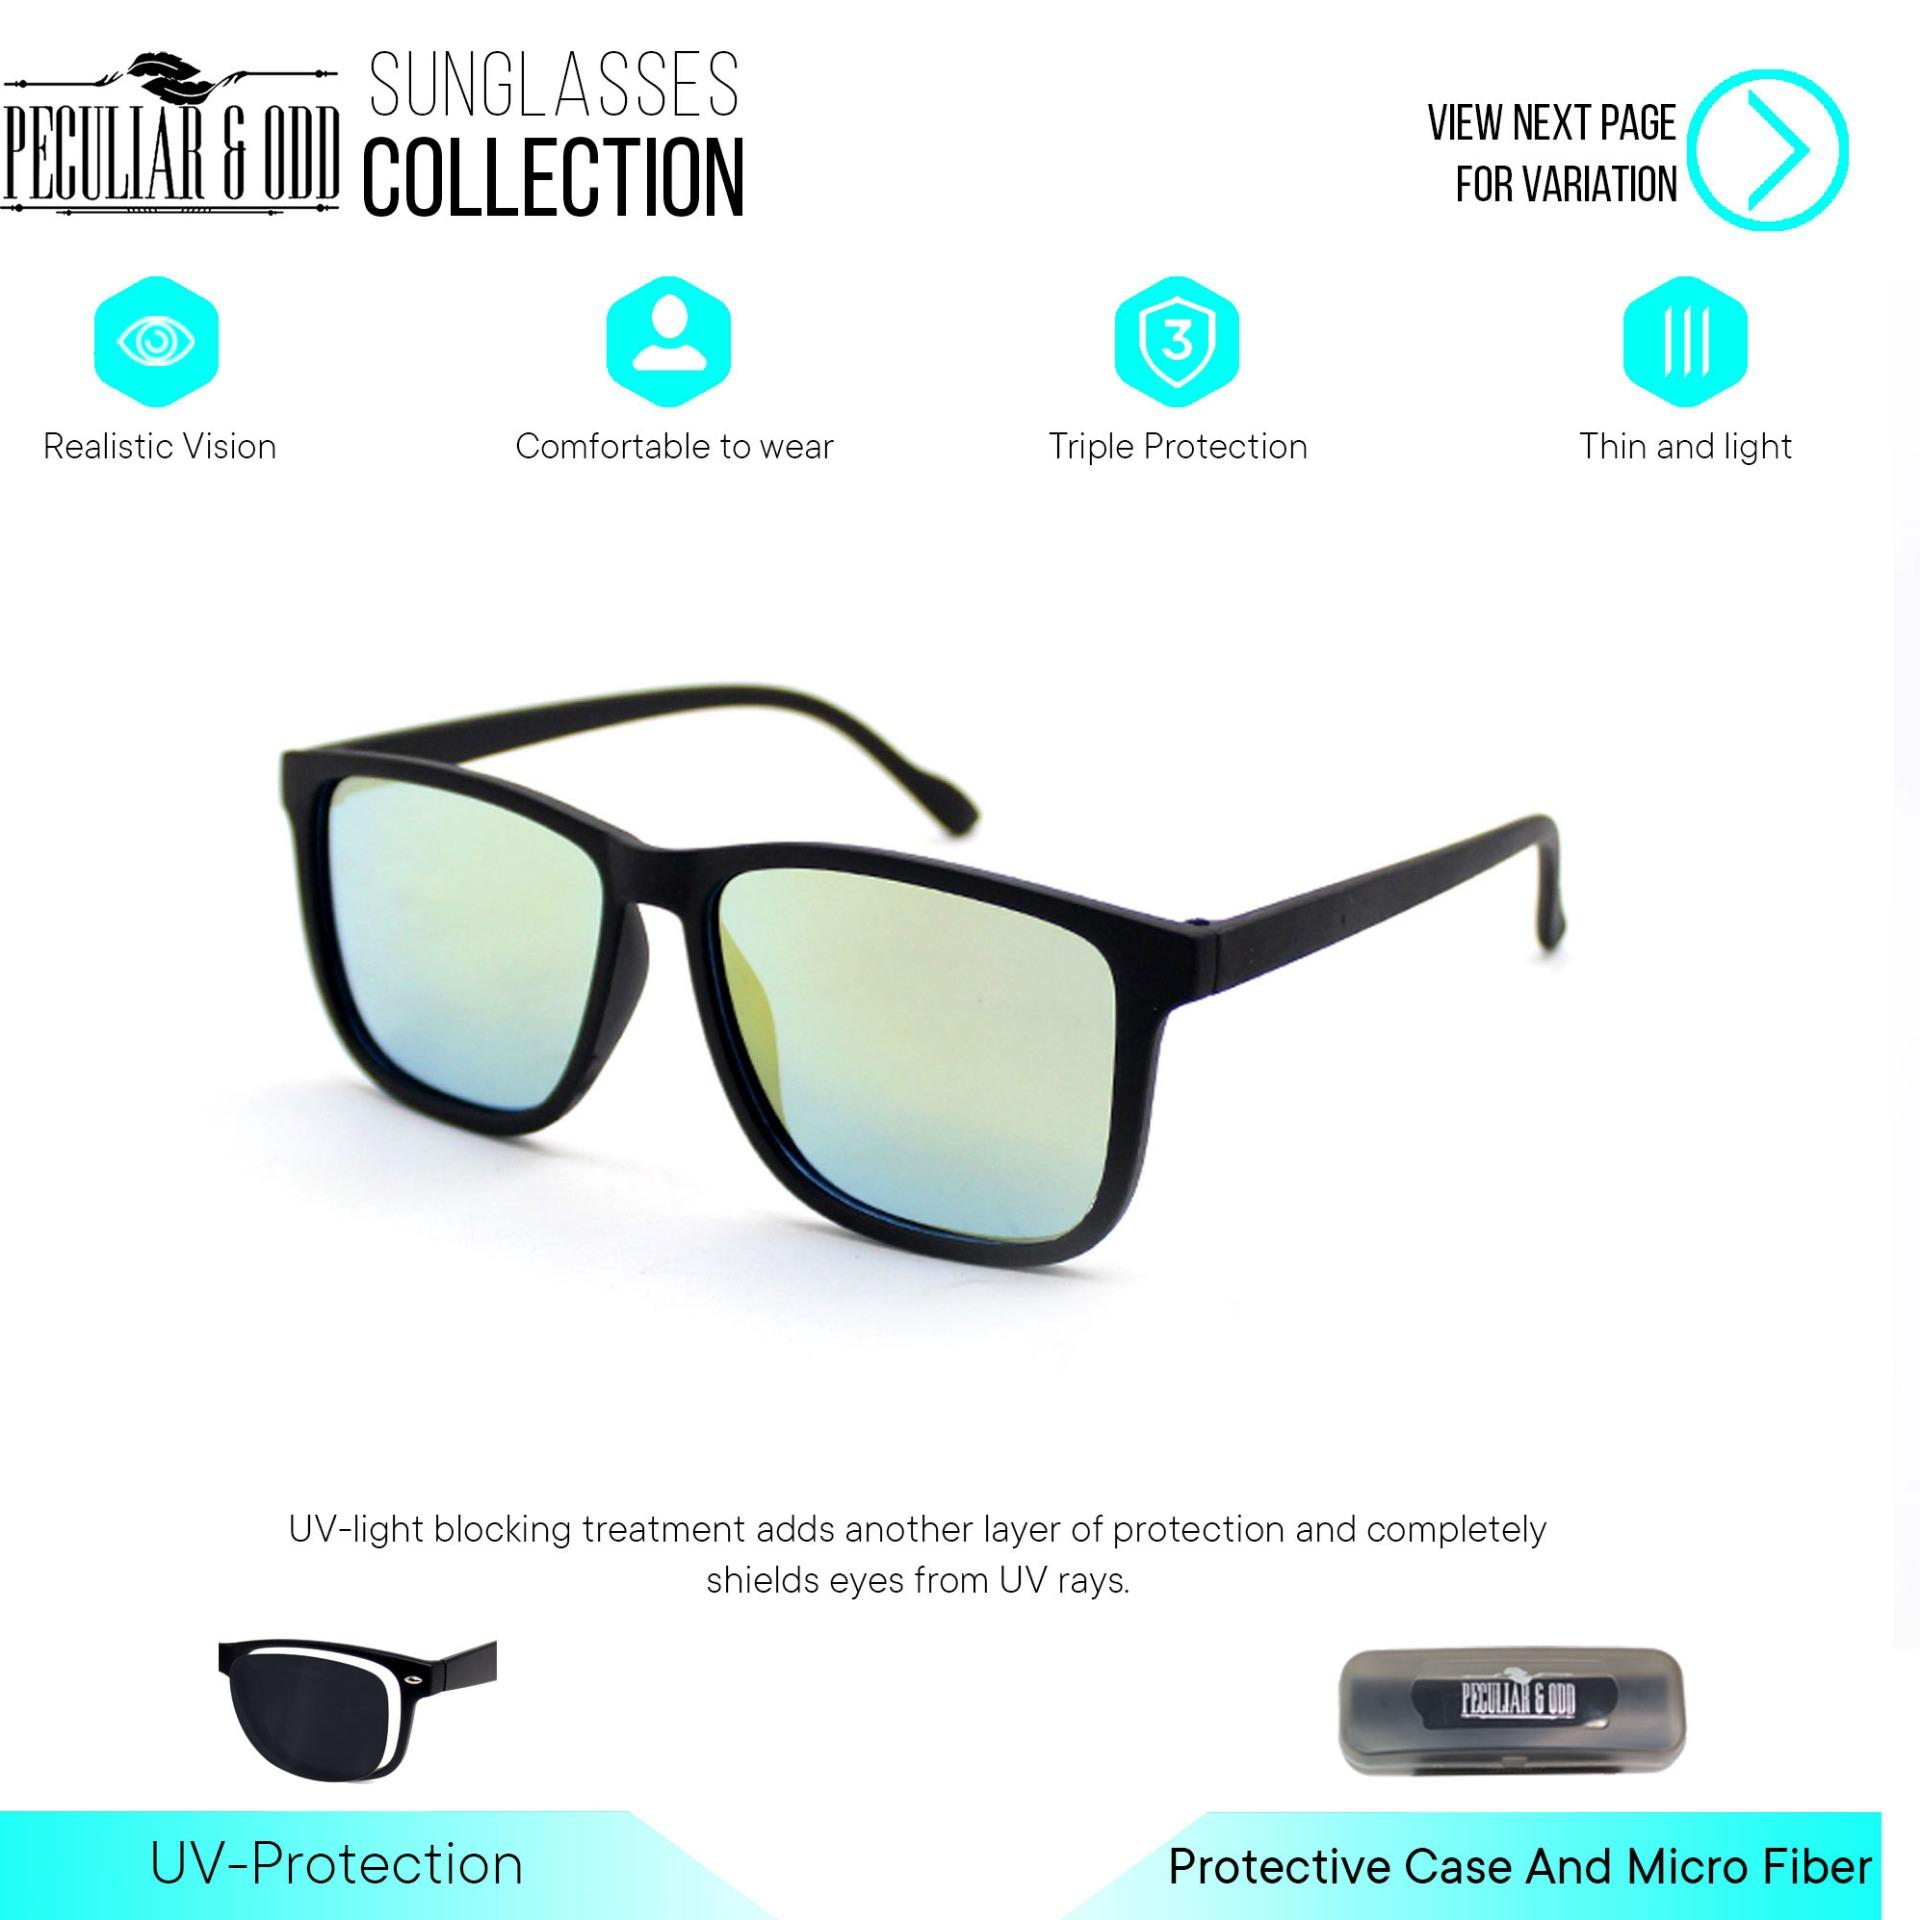 c05efd7d3507 Peculiar Oversized Square Classic Sunglass 3476 Eyewear Shades- Peculiar  and Odd Collection